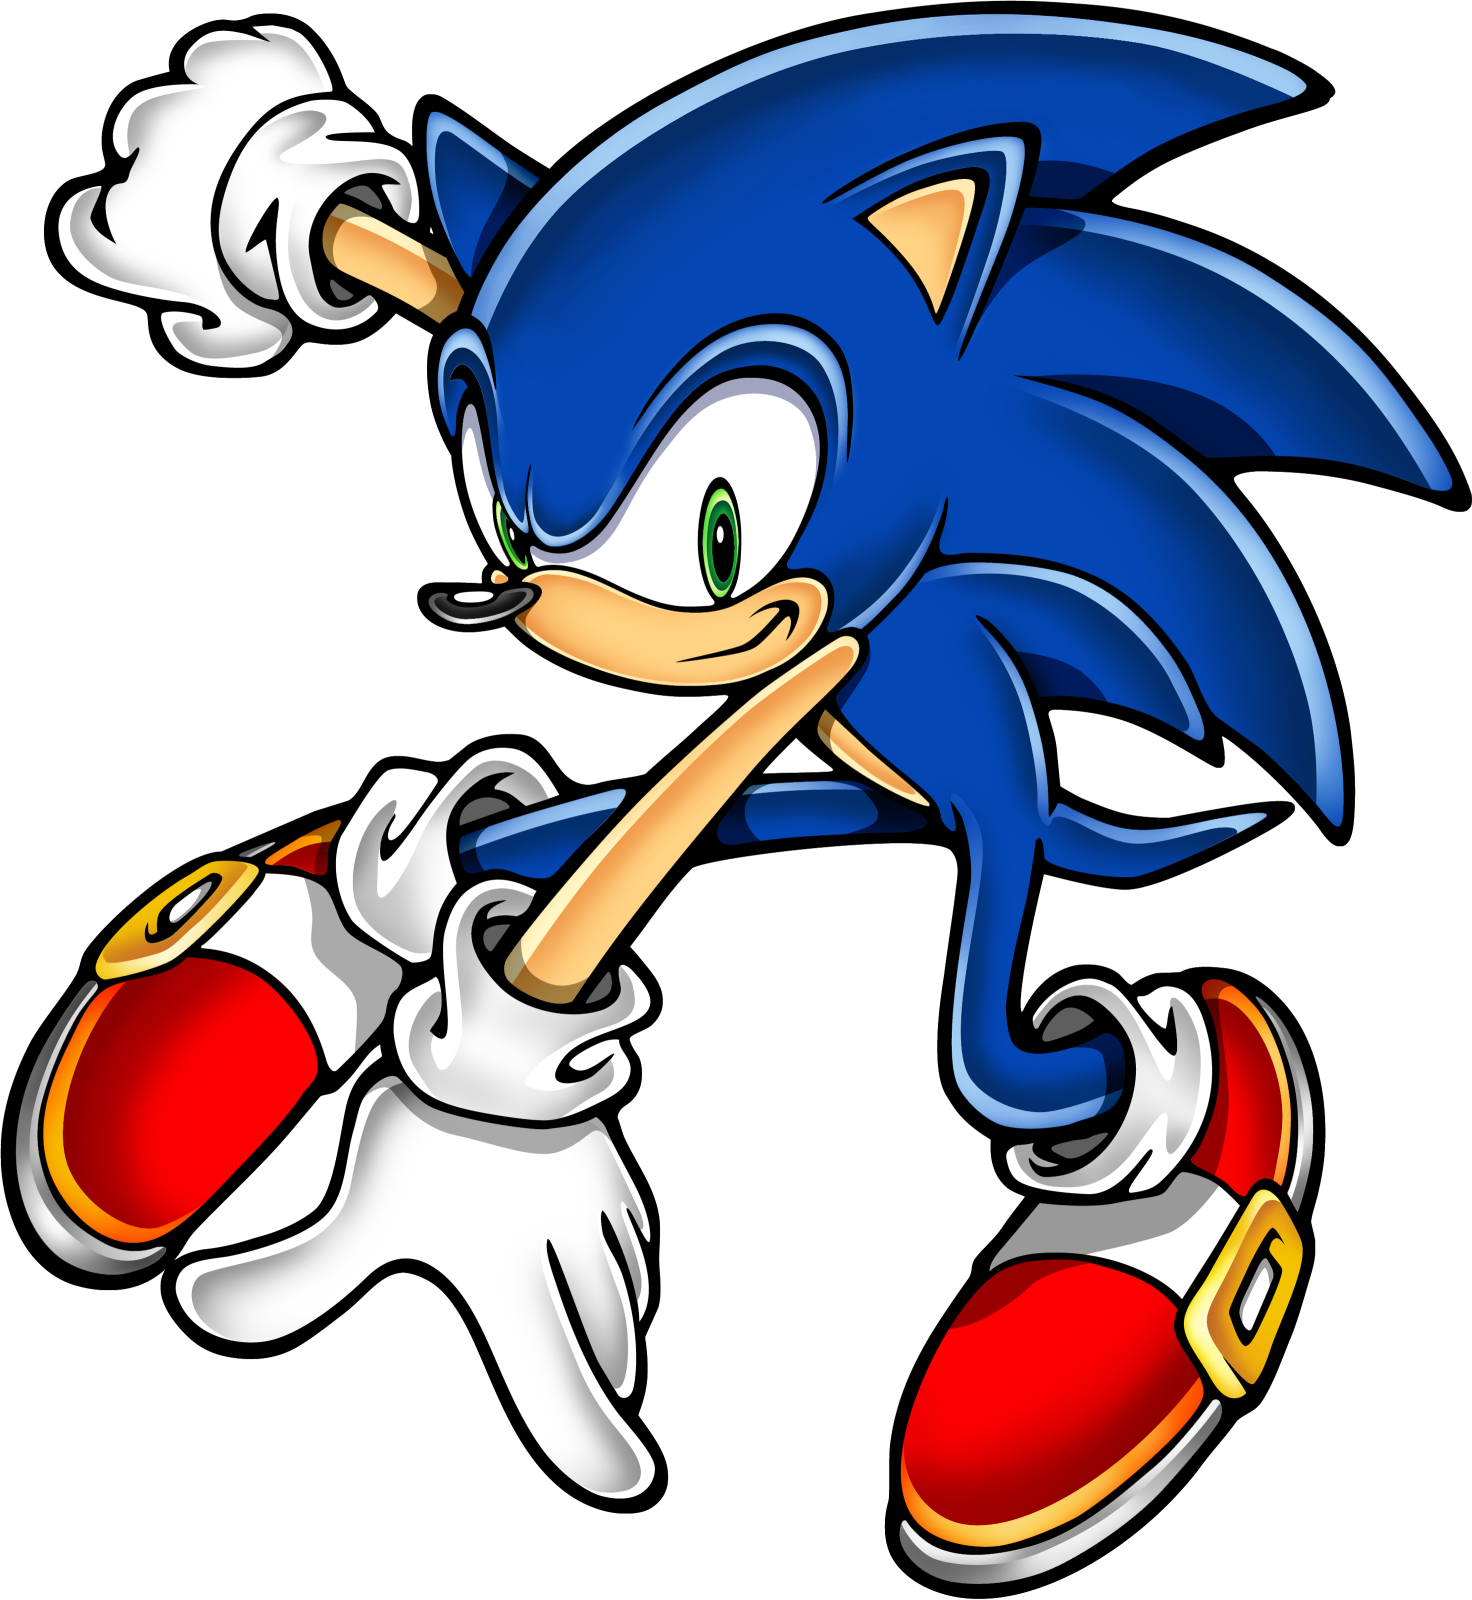 Sonic Art Assets DVD - Sonic The Hedgehog - 21.png